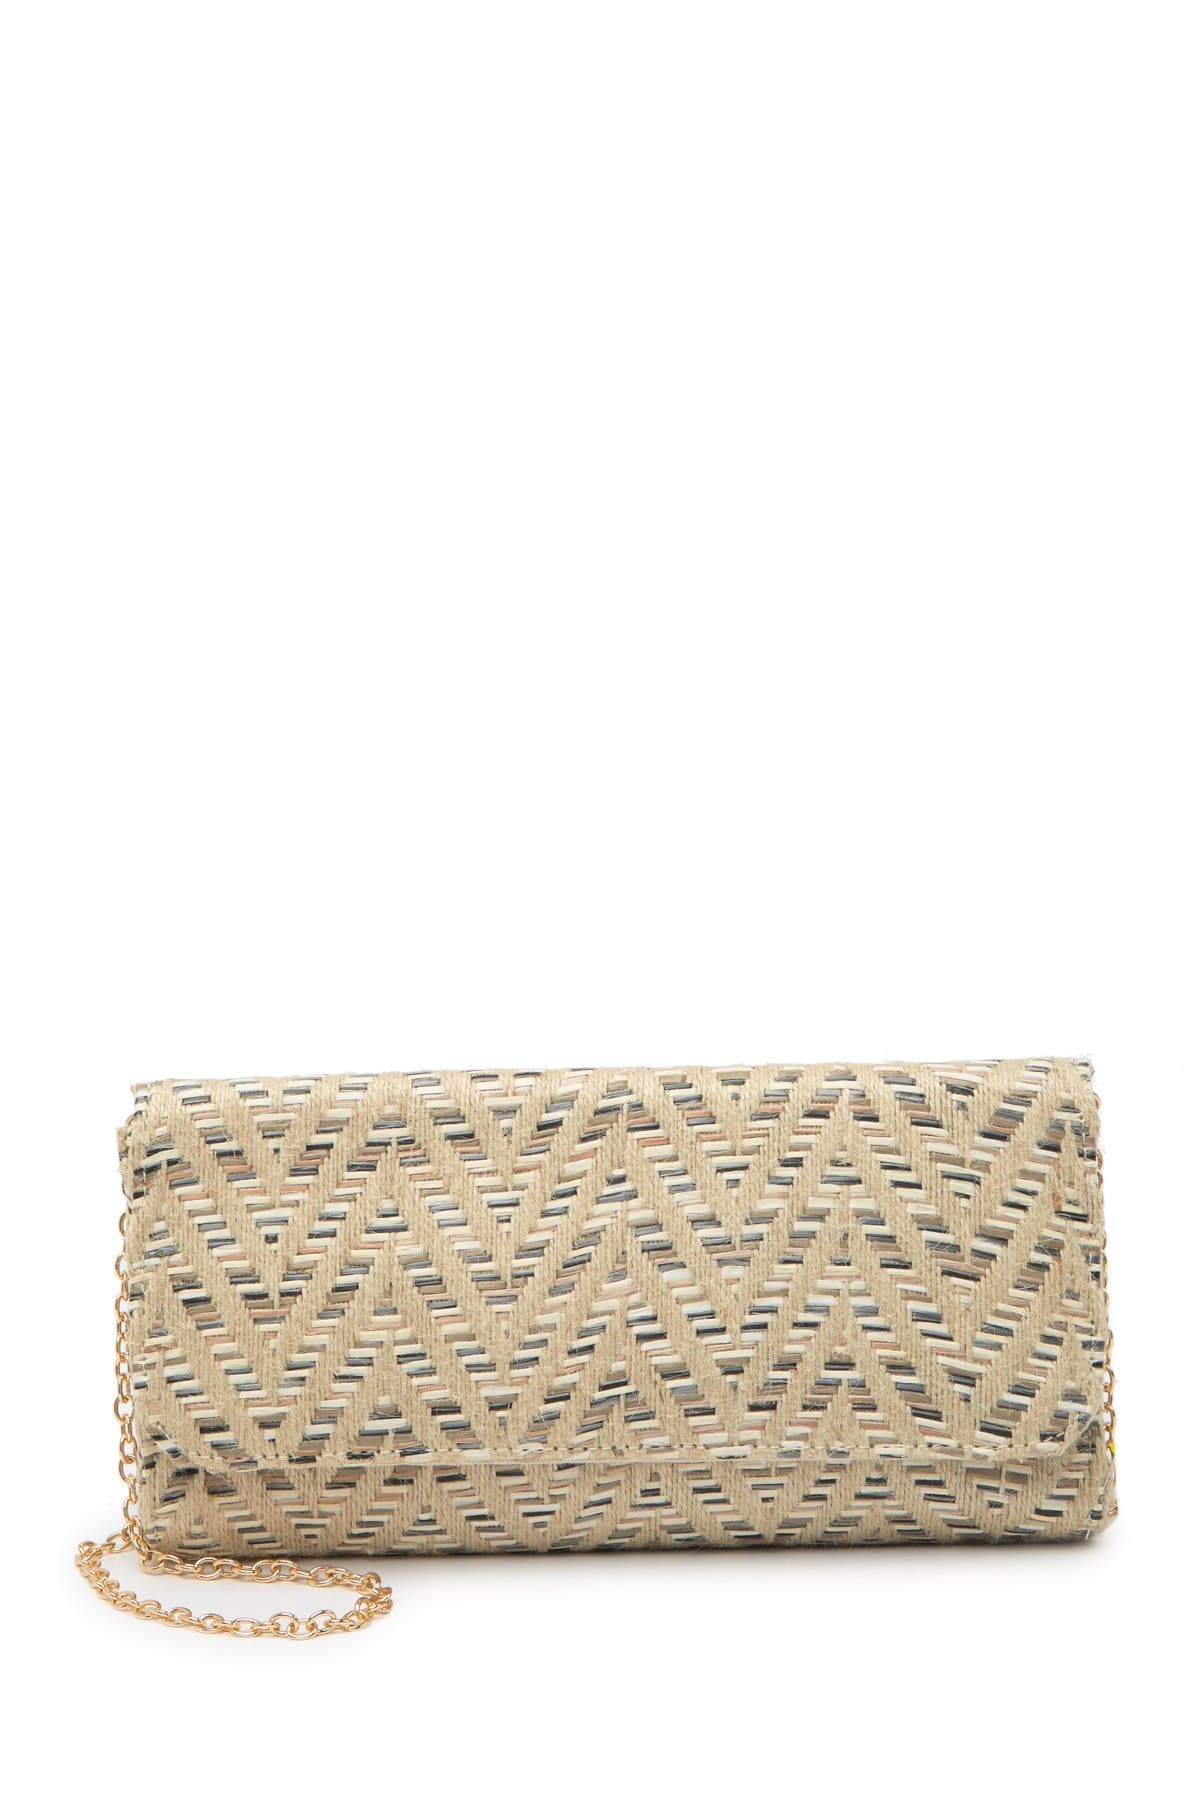 Image of Urban Expressions Bahamas Multicolored Crossbody Clutch